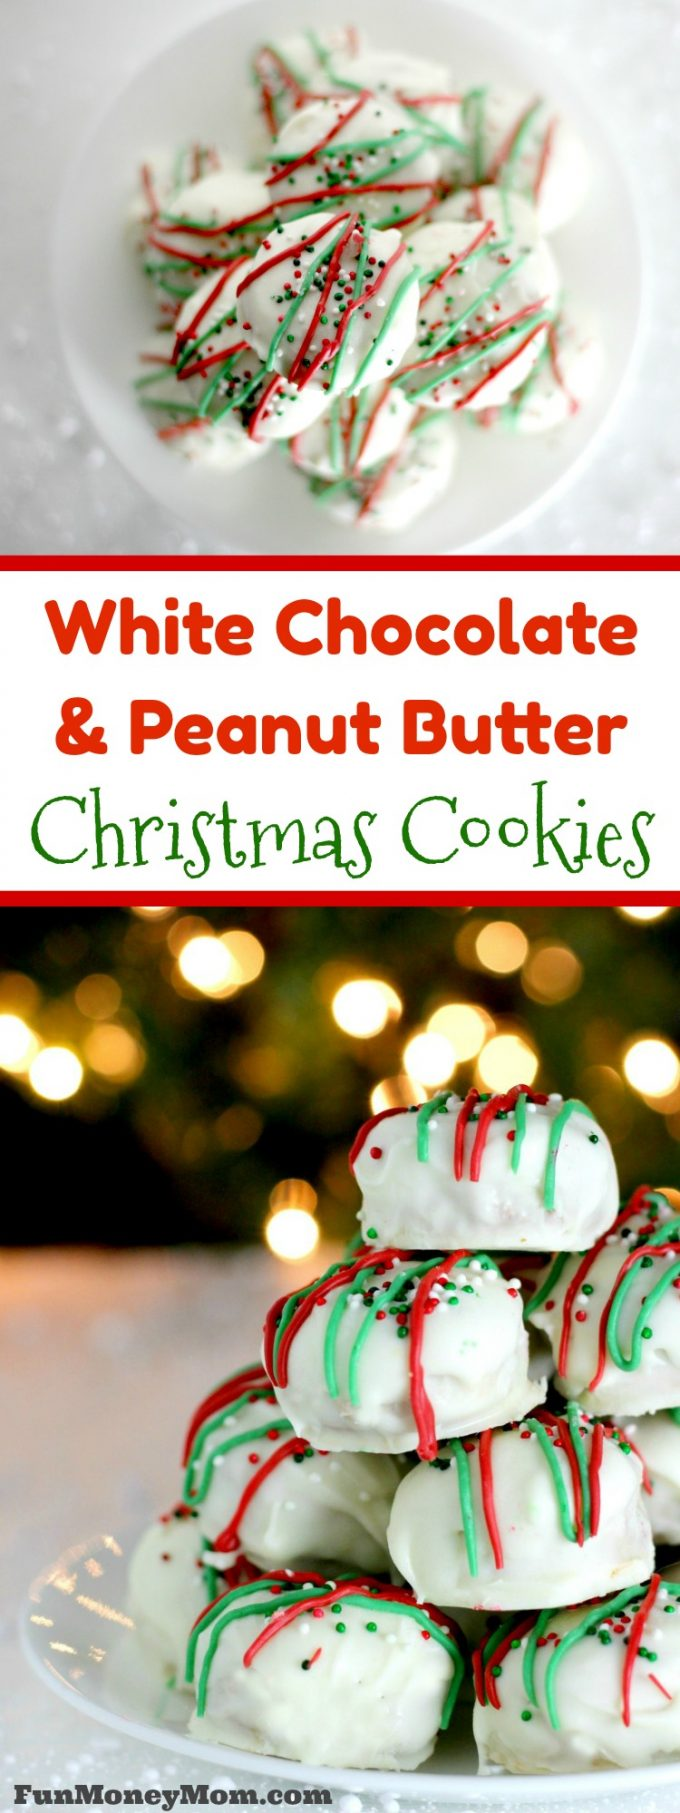 Need cookies for Santa? These white chocolate peanut butter Christmas cookies are perfect for both Santa and any holiday party!